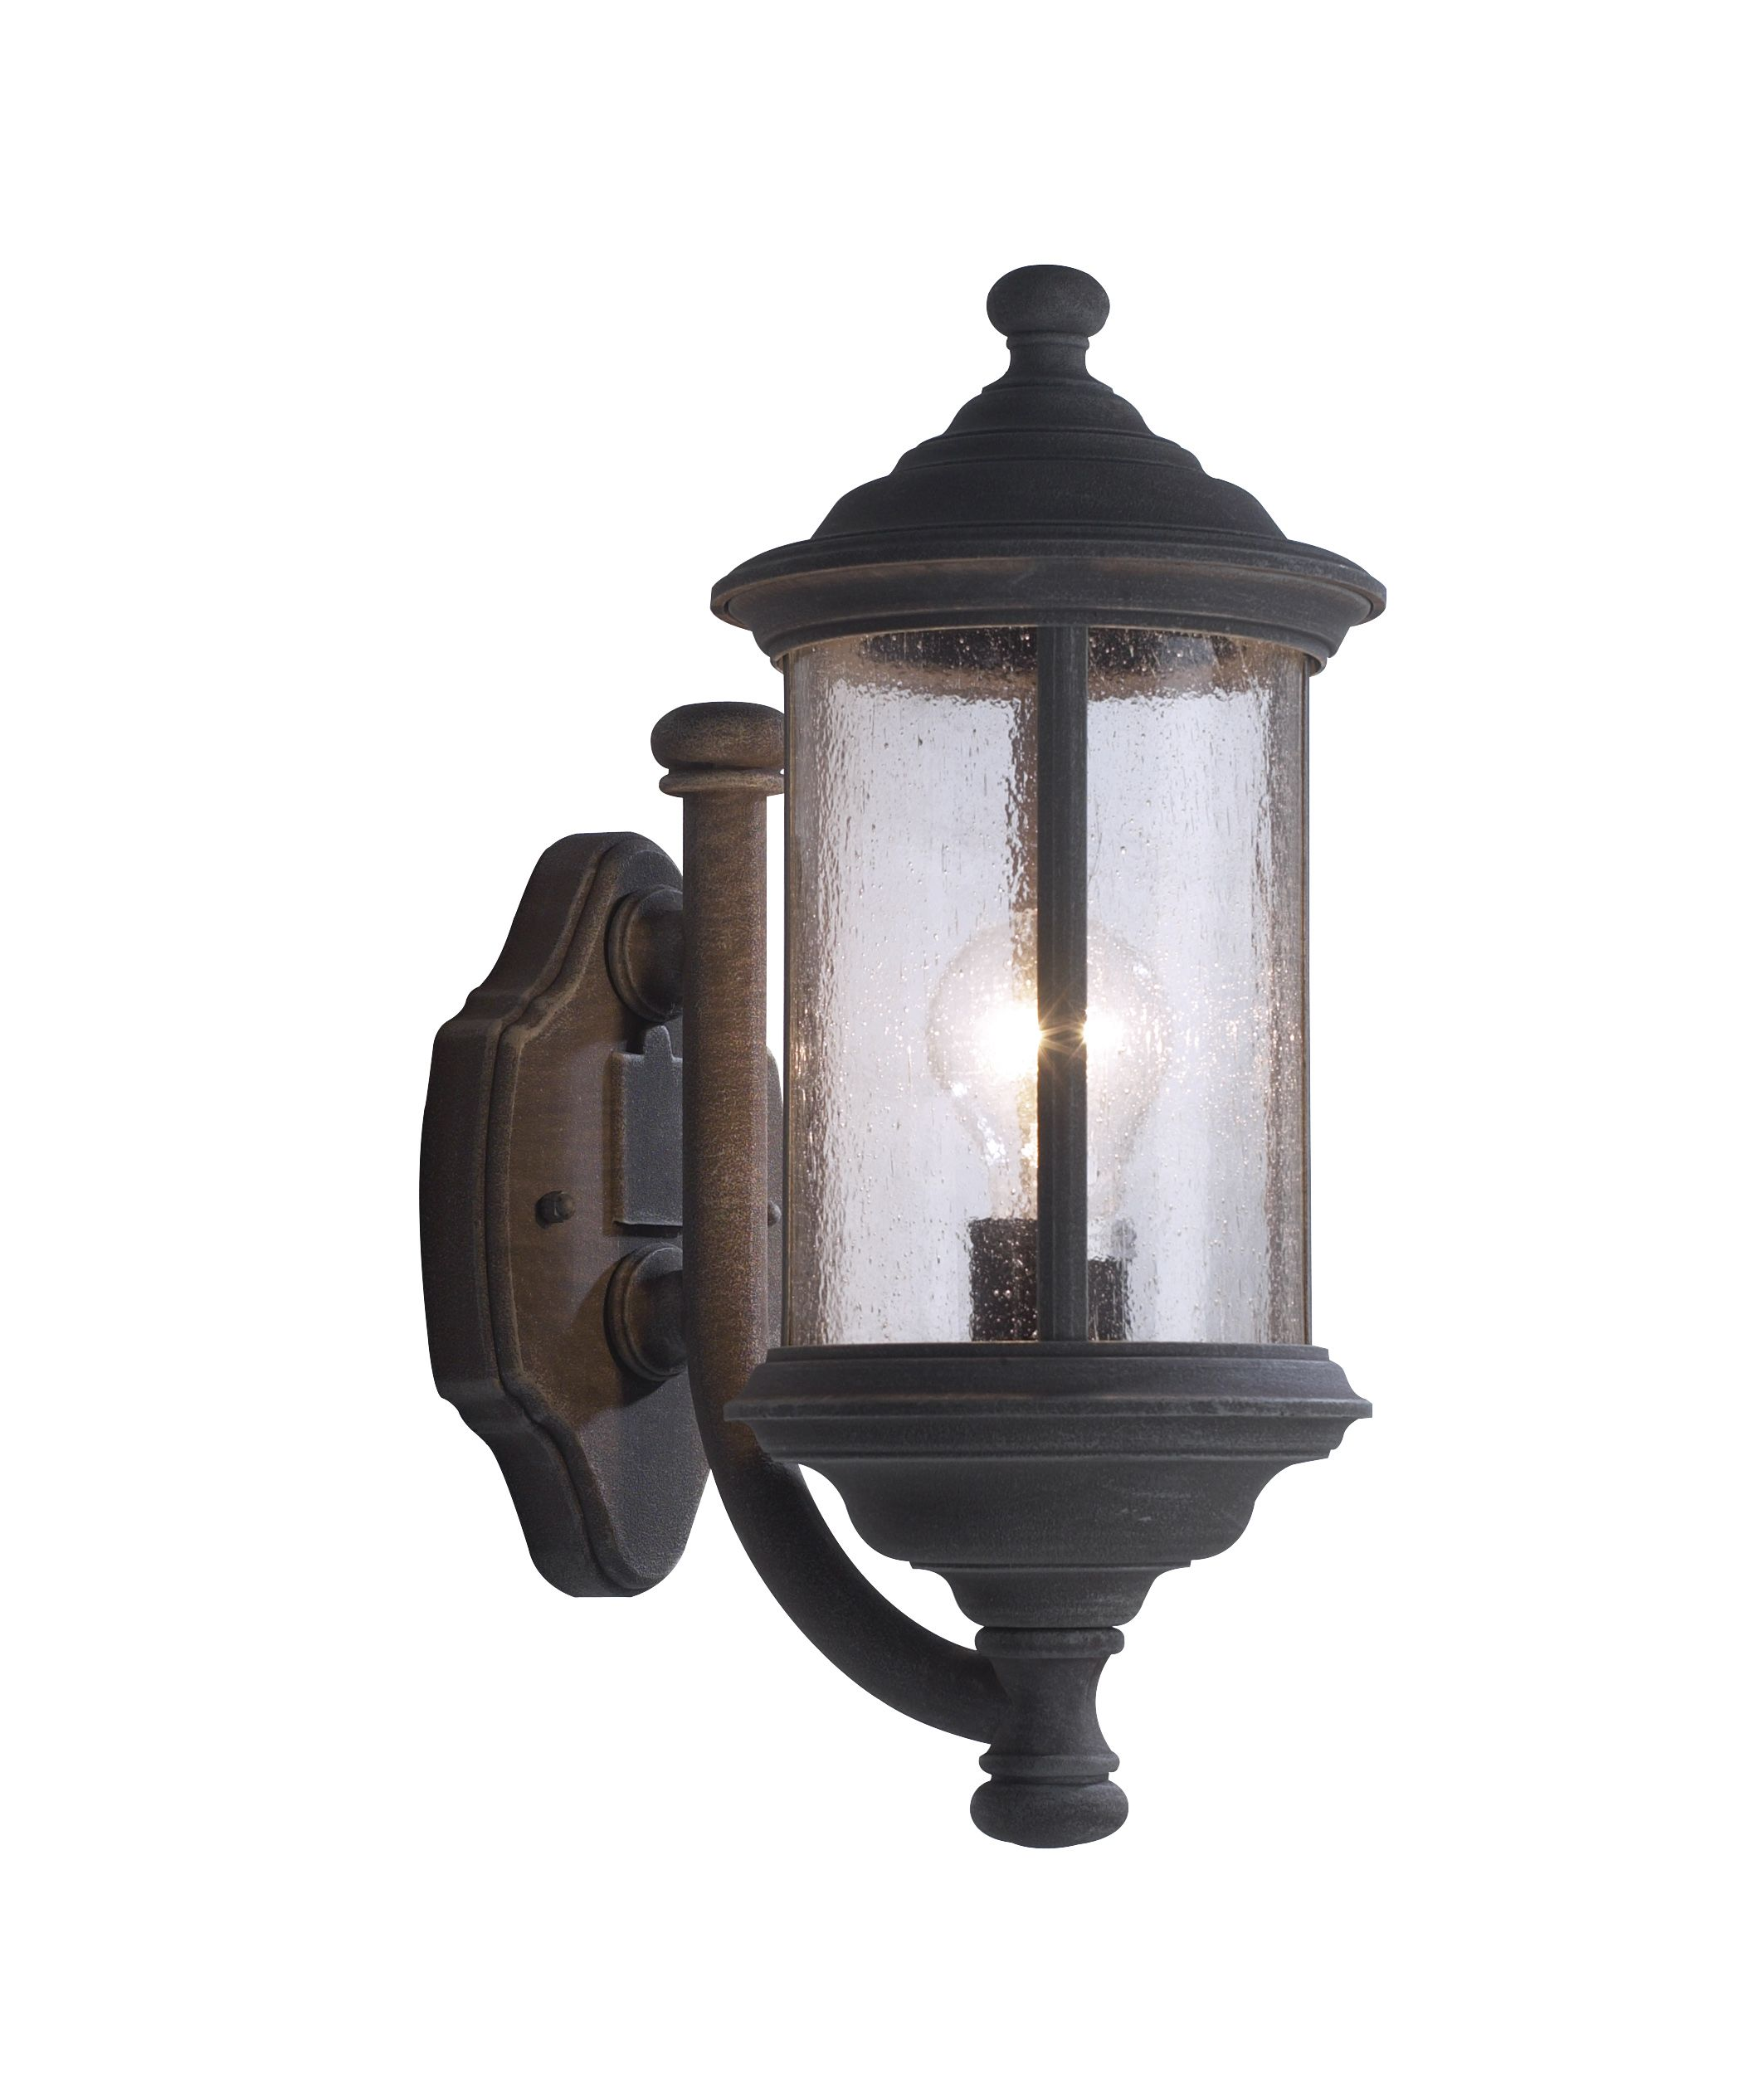 Double Insulated Switched Wall Lights : Brompton 1-light Old Iron Double Insulated Outdoor Wall Light Double Insulated BXBRO1661-17